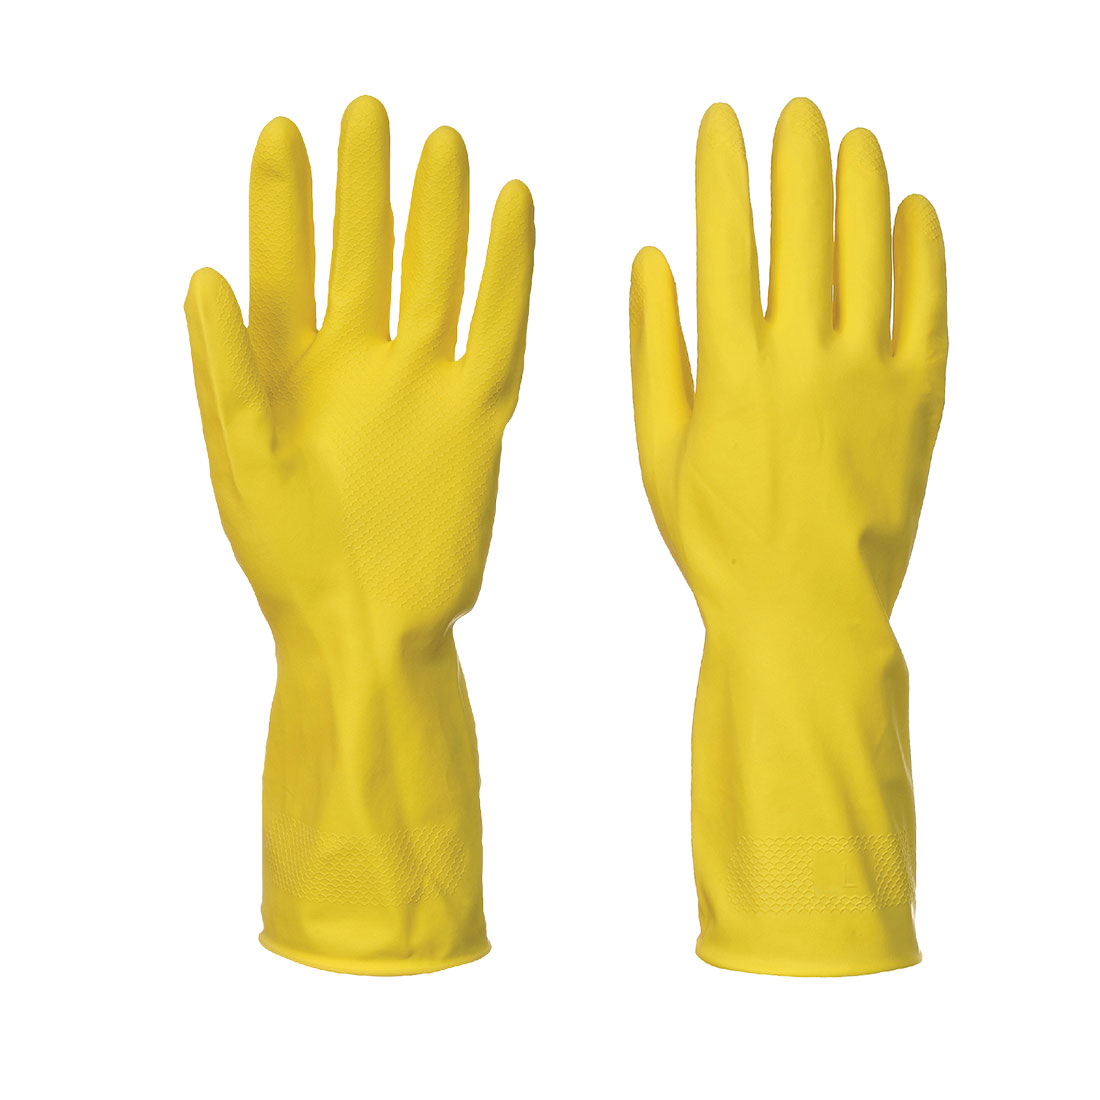 Portwest Household Latex Glove - A800